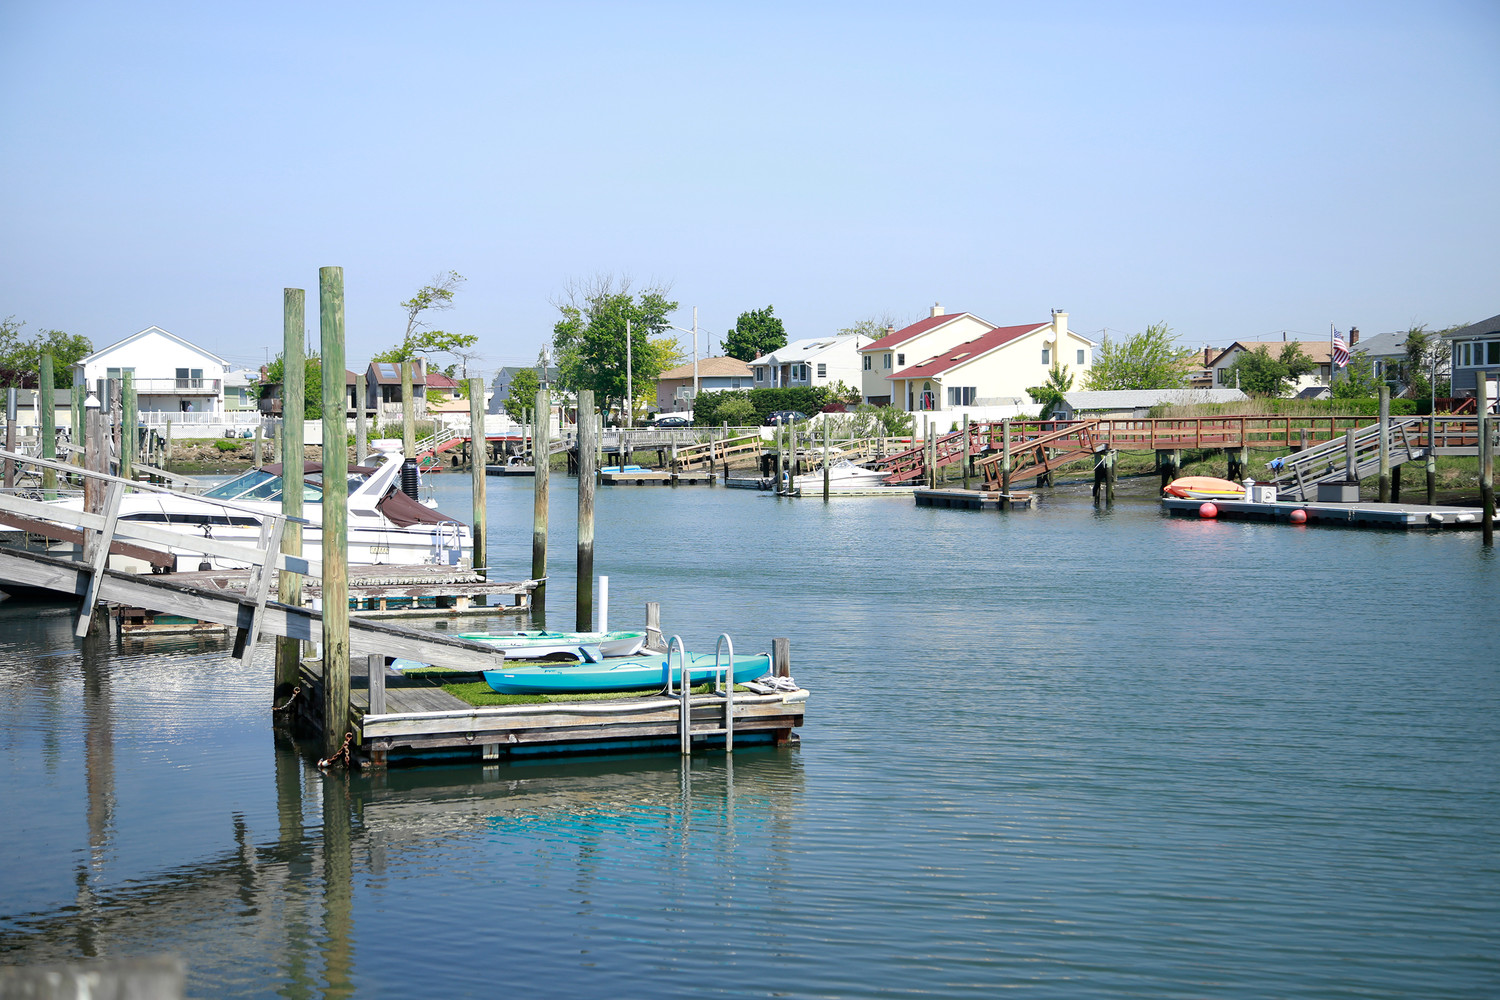 A proposed town law expanding the regulation of waterfront structures such as docks drew backlash on May 22 from residents over language that would ban the rental of dock space.